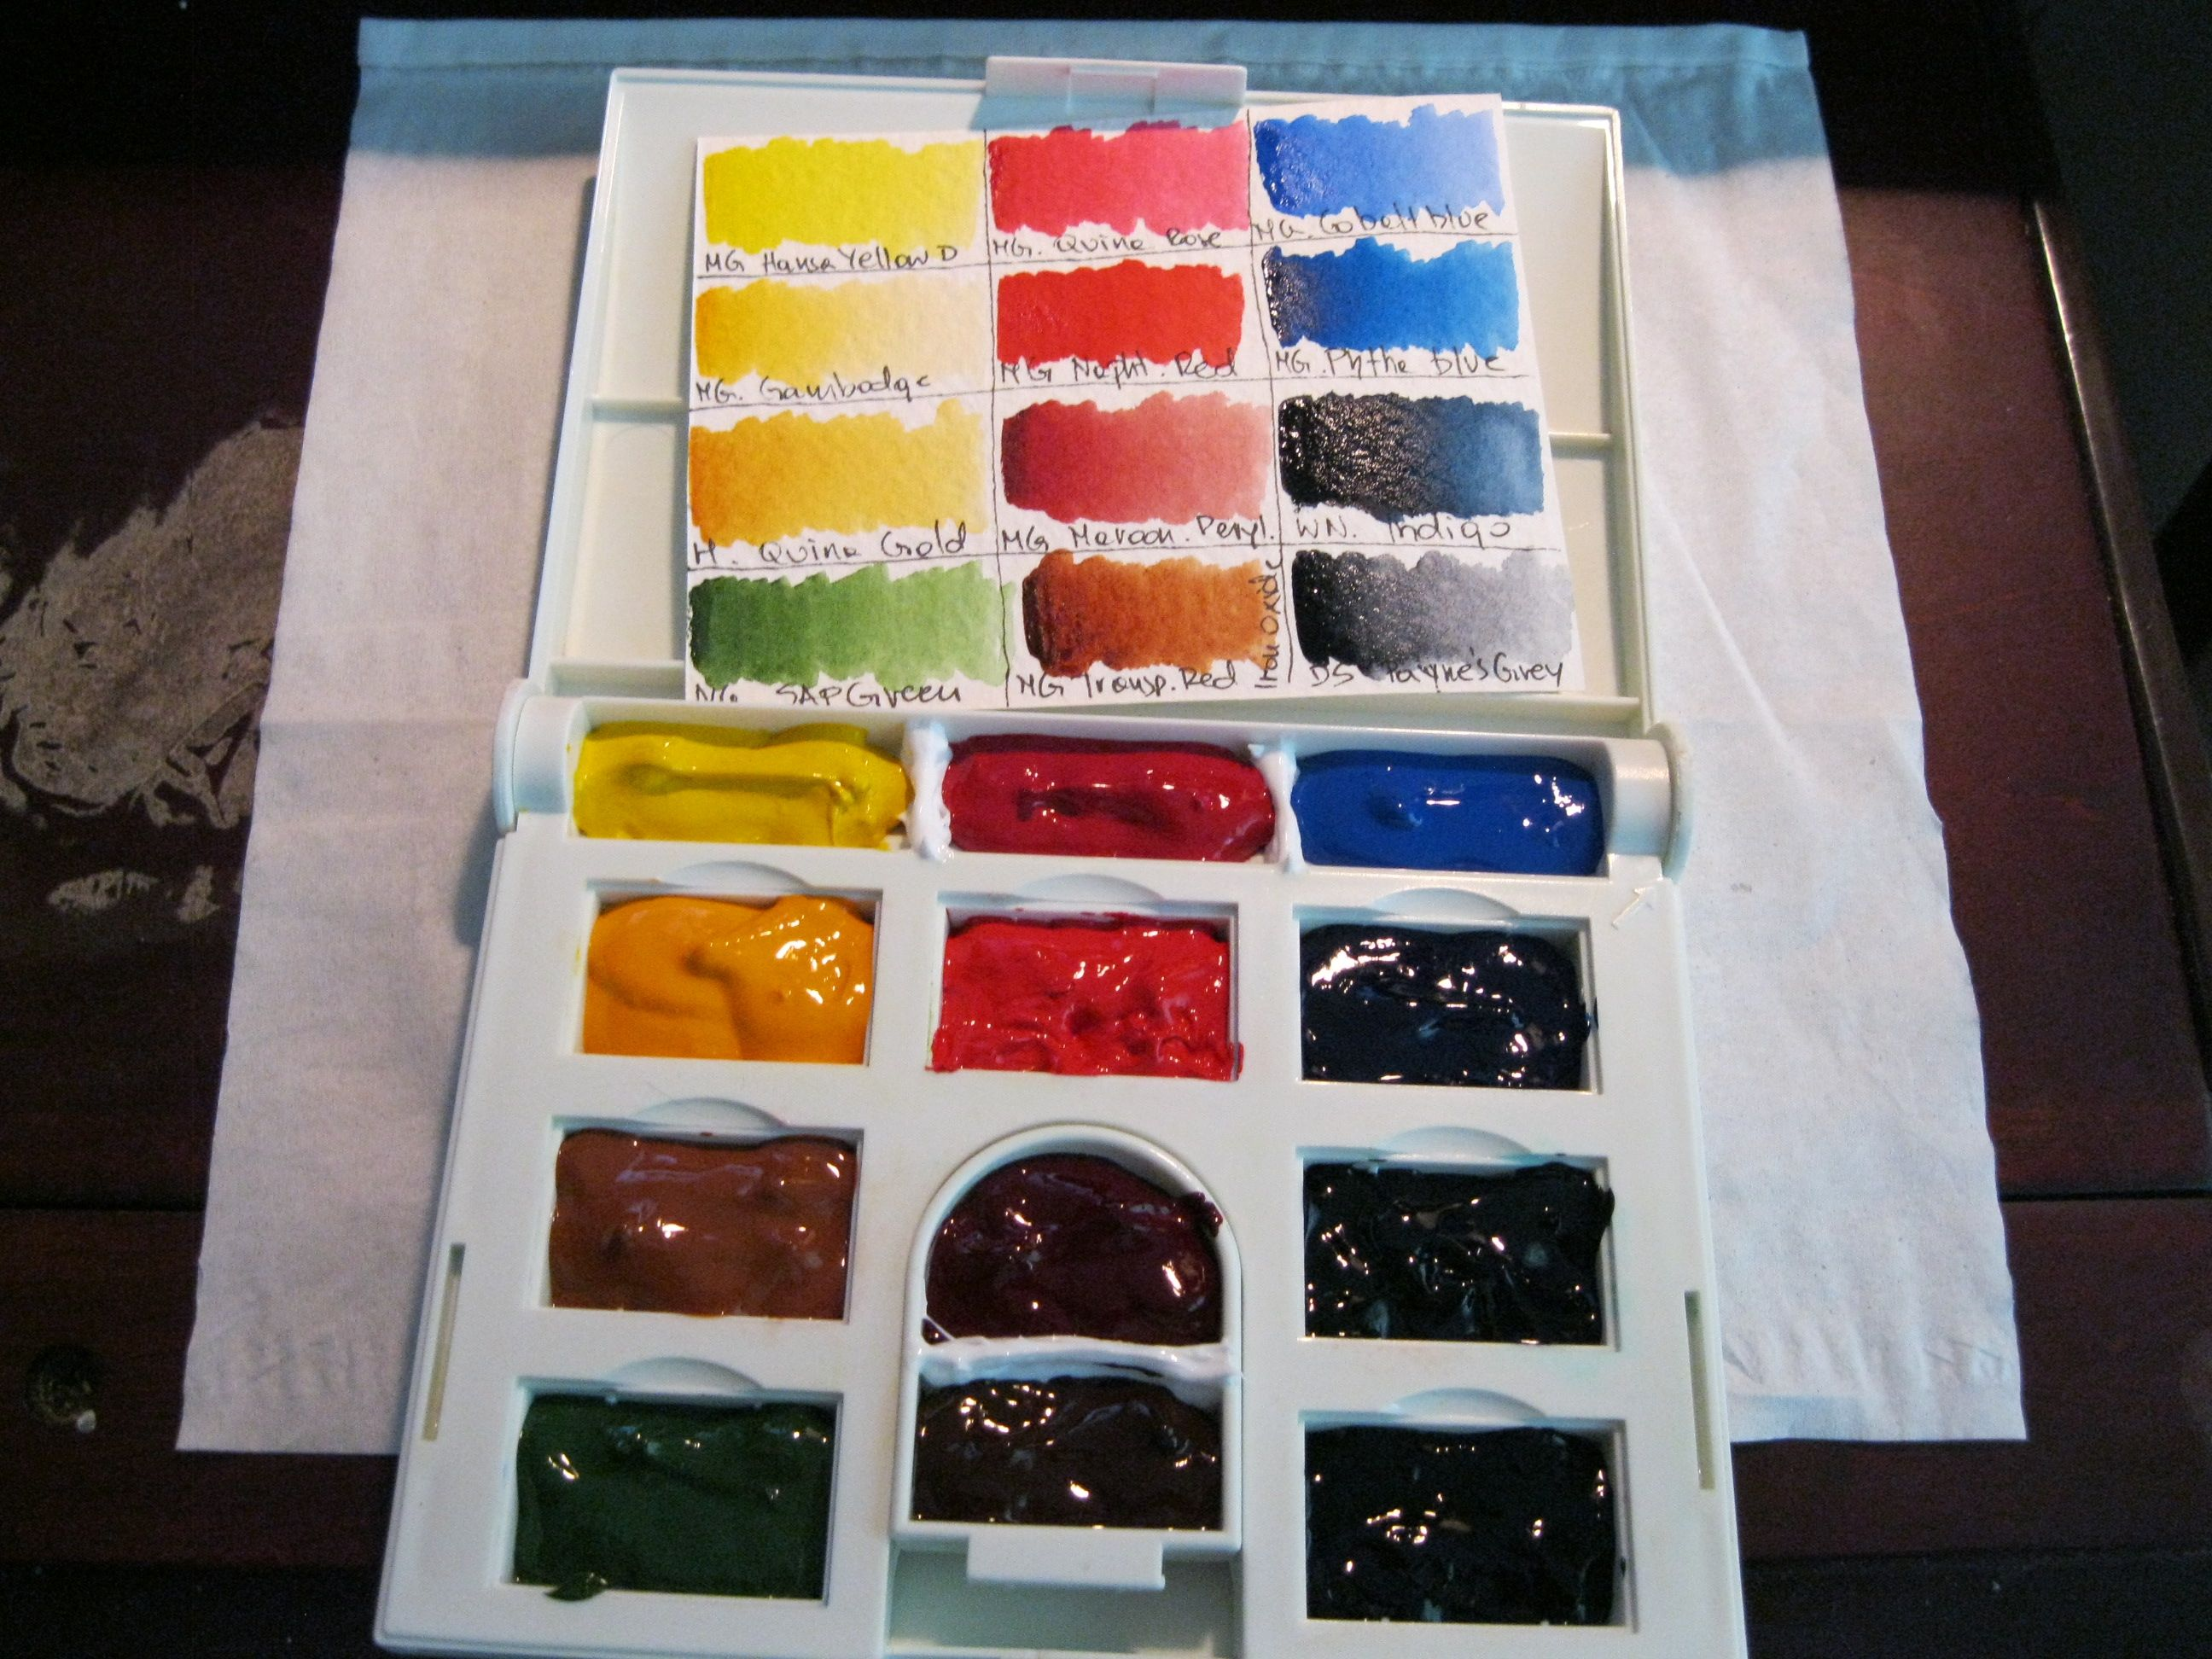 My modified Cotman travel palette. I used bathroom silicon to create extra wells.  It gives me 12 wells in total. I put M.Graham watercolors paint without pans.